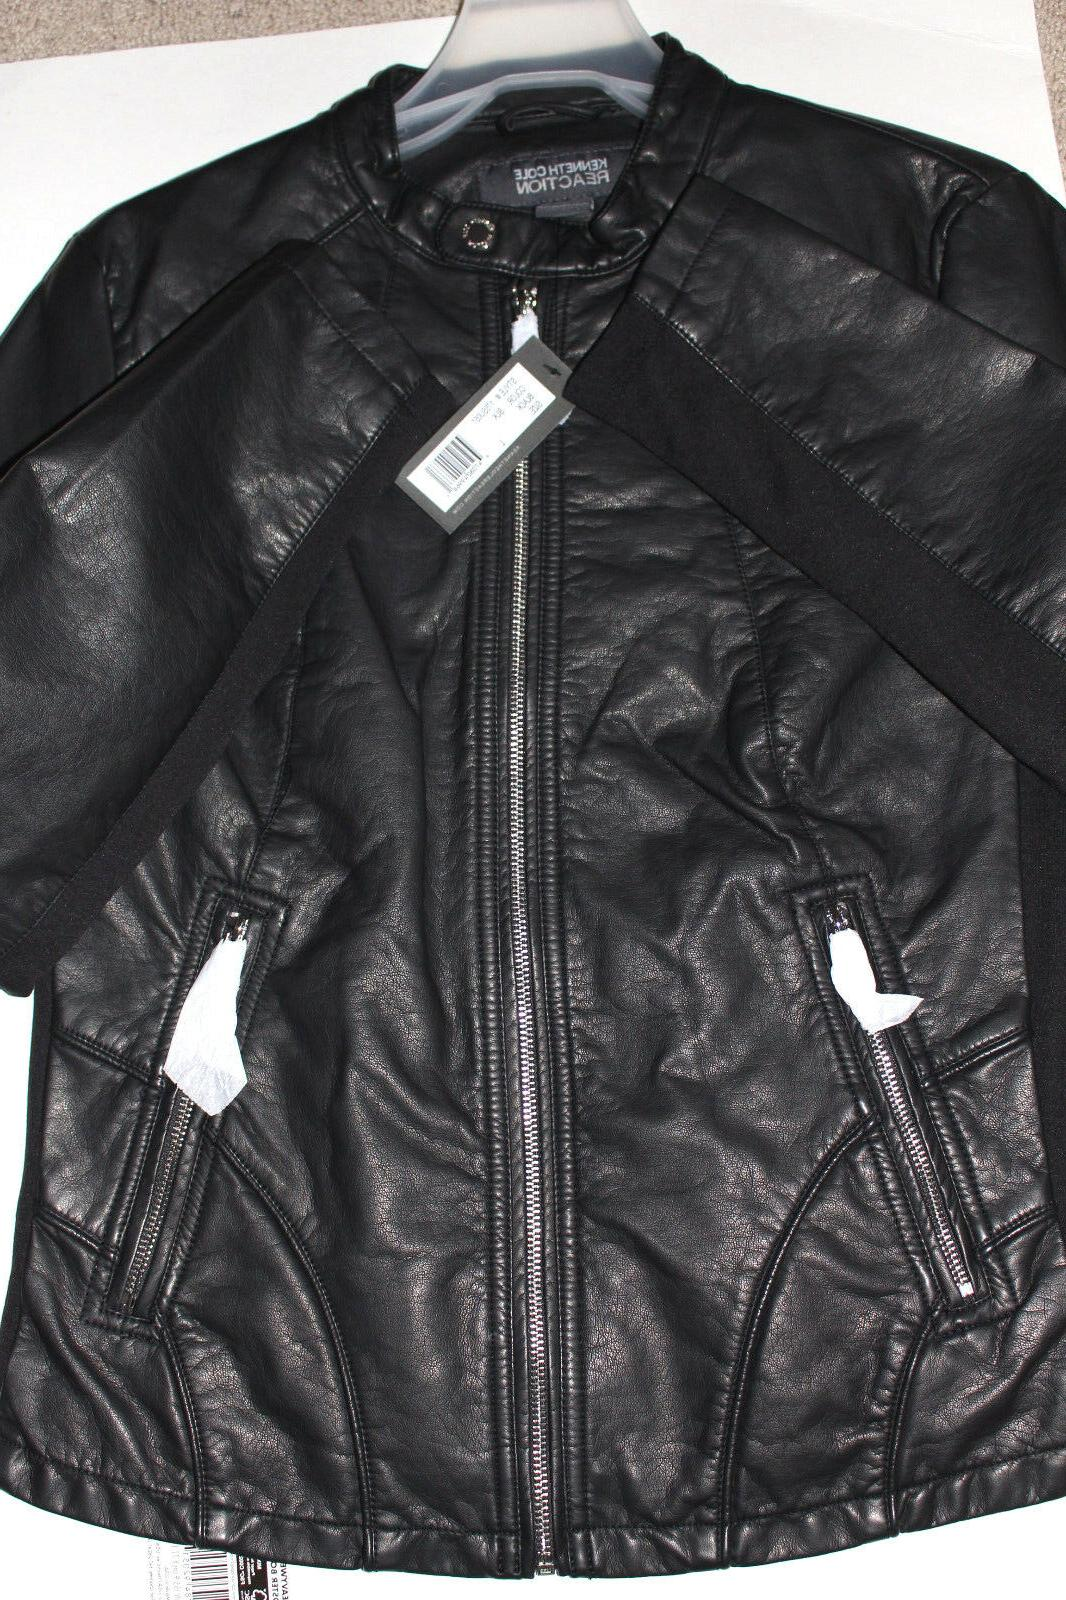 NWT Kenneth Cole Reaction Ladies' Leather Jackets, stye, colors,S,L